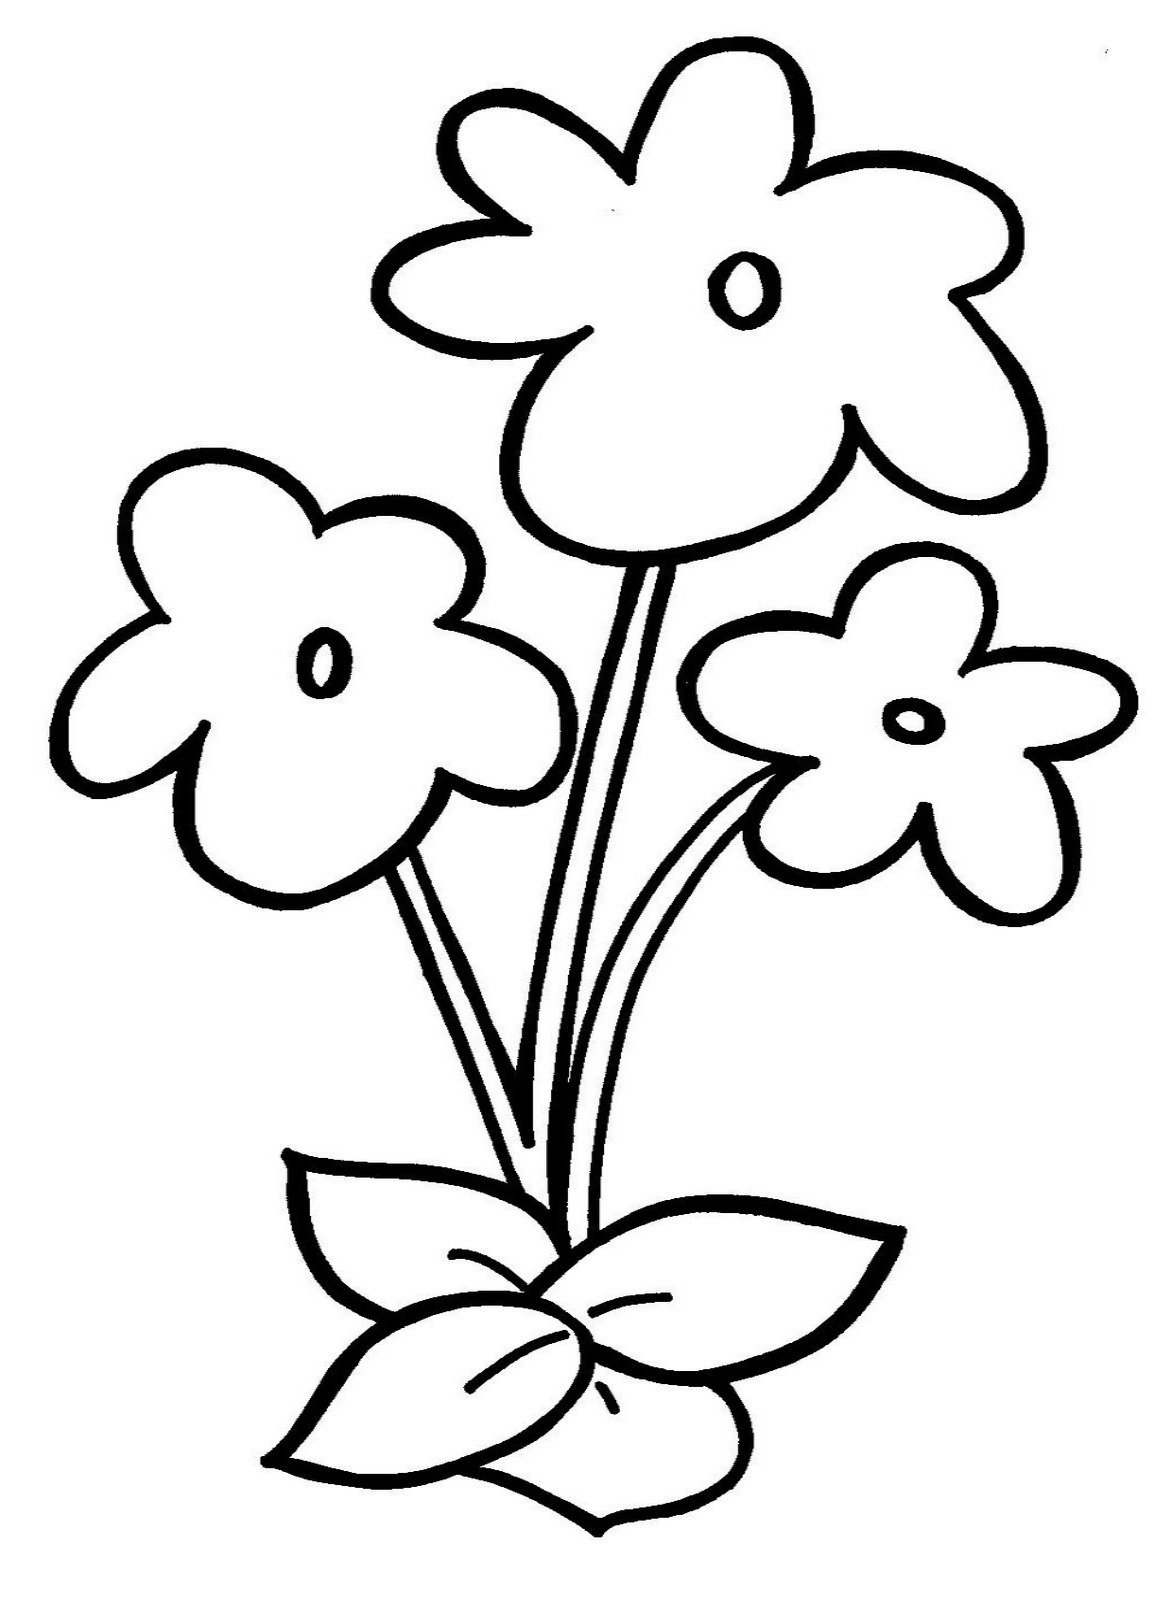 coloring page of a flower free printable flower coloring pages for kids cool2bkids flower of a page coloring